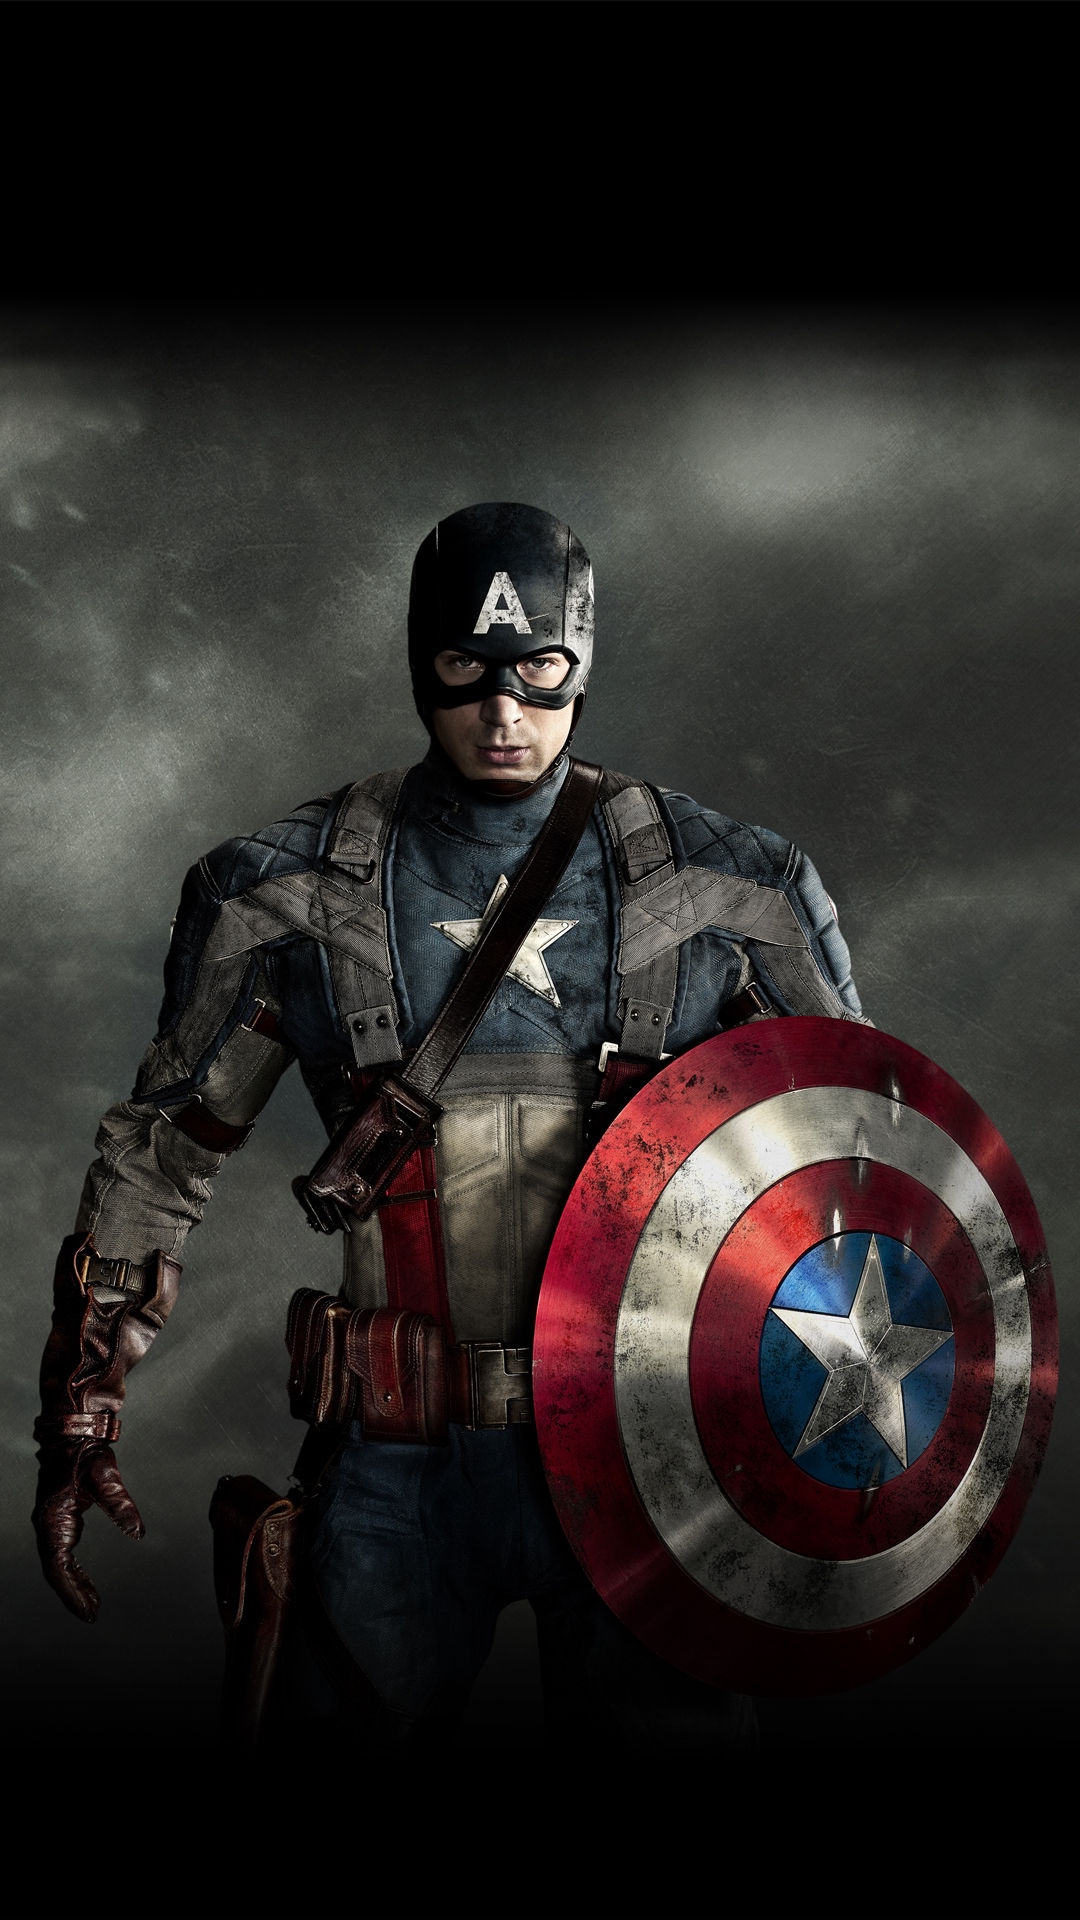 captain america wallpaper android  The Avengers Captain America HTC hd wallpaper